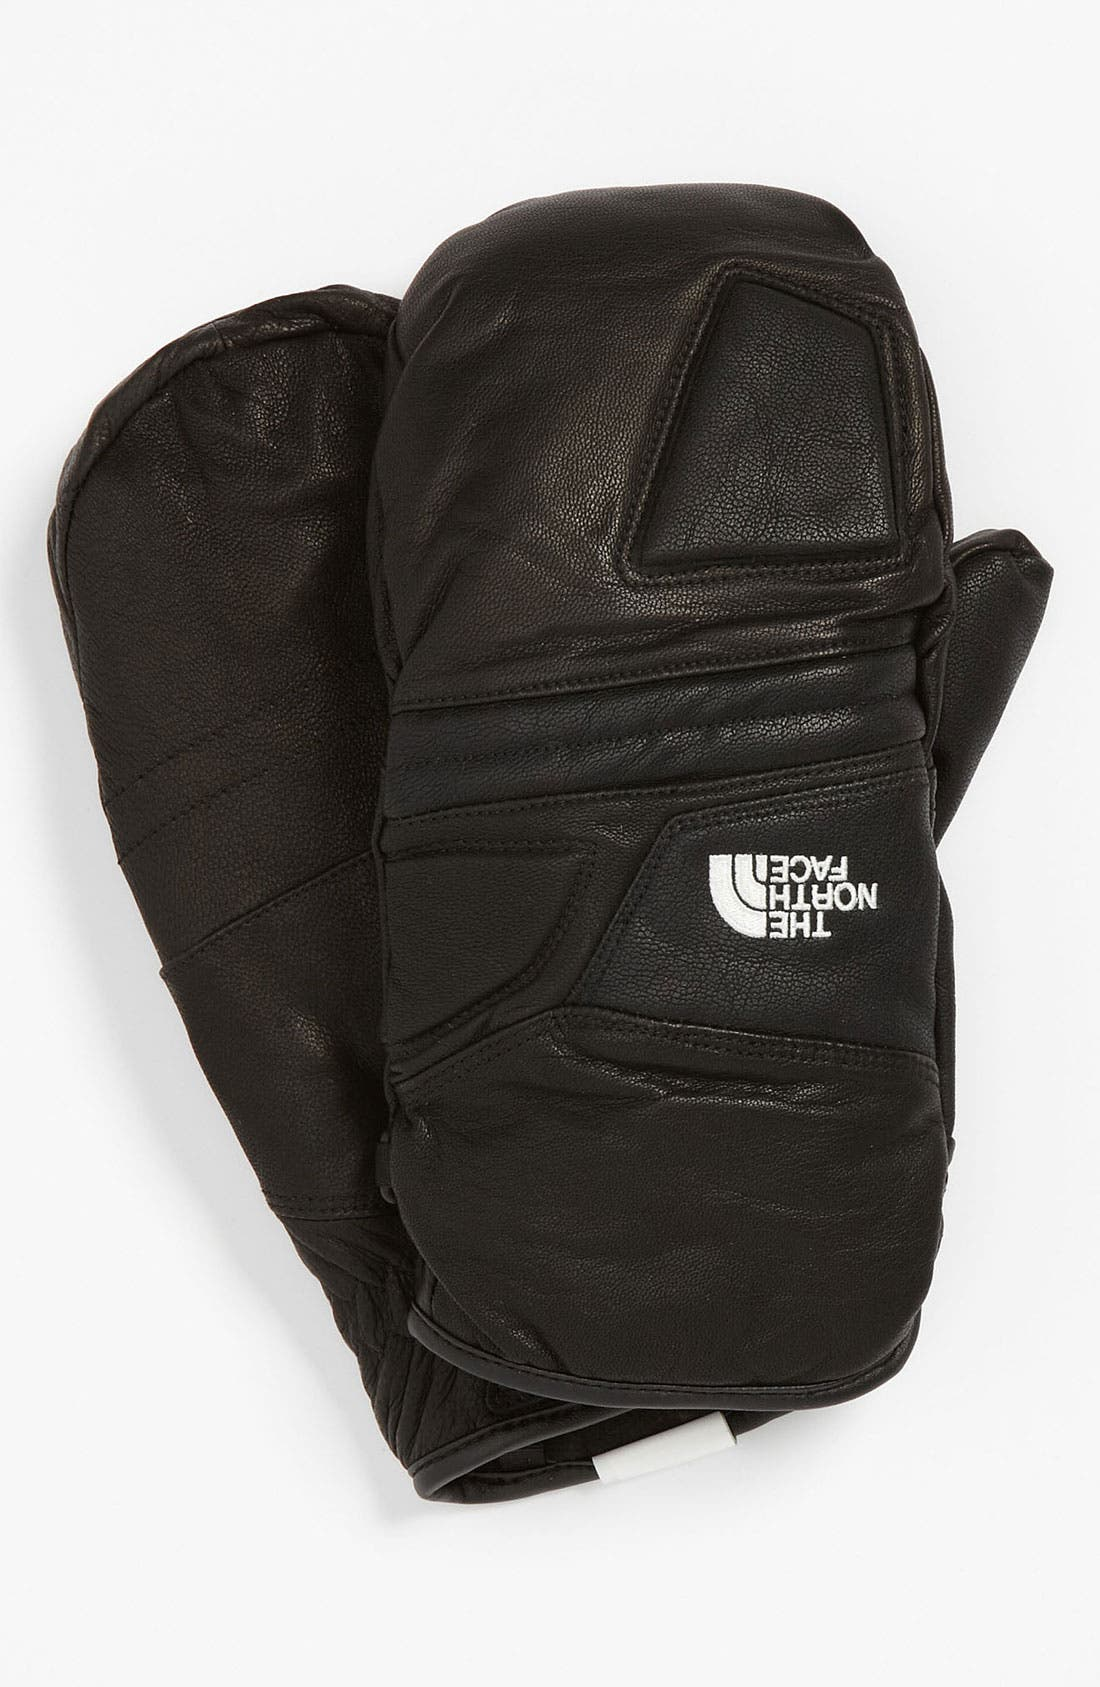 Alternate Image 1 Selected - The North Face 'Hooligan' Ski Mitts